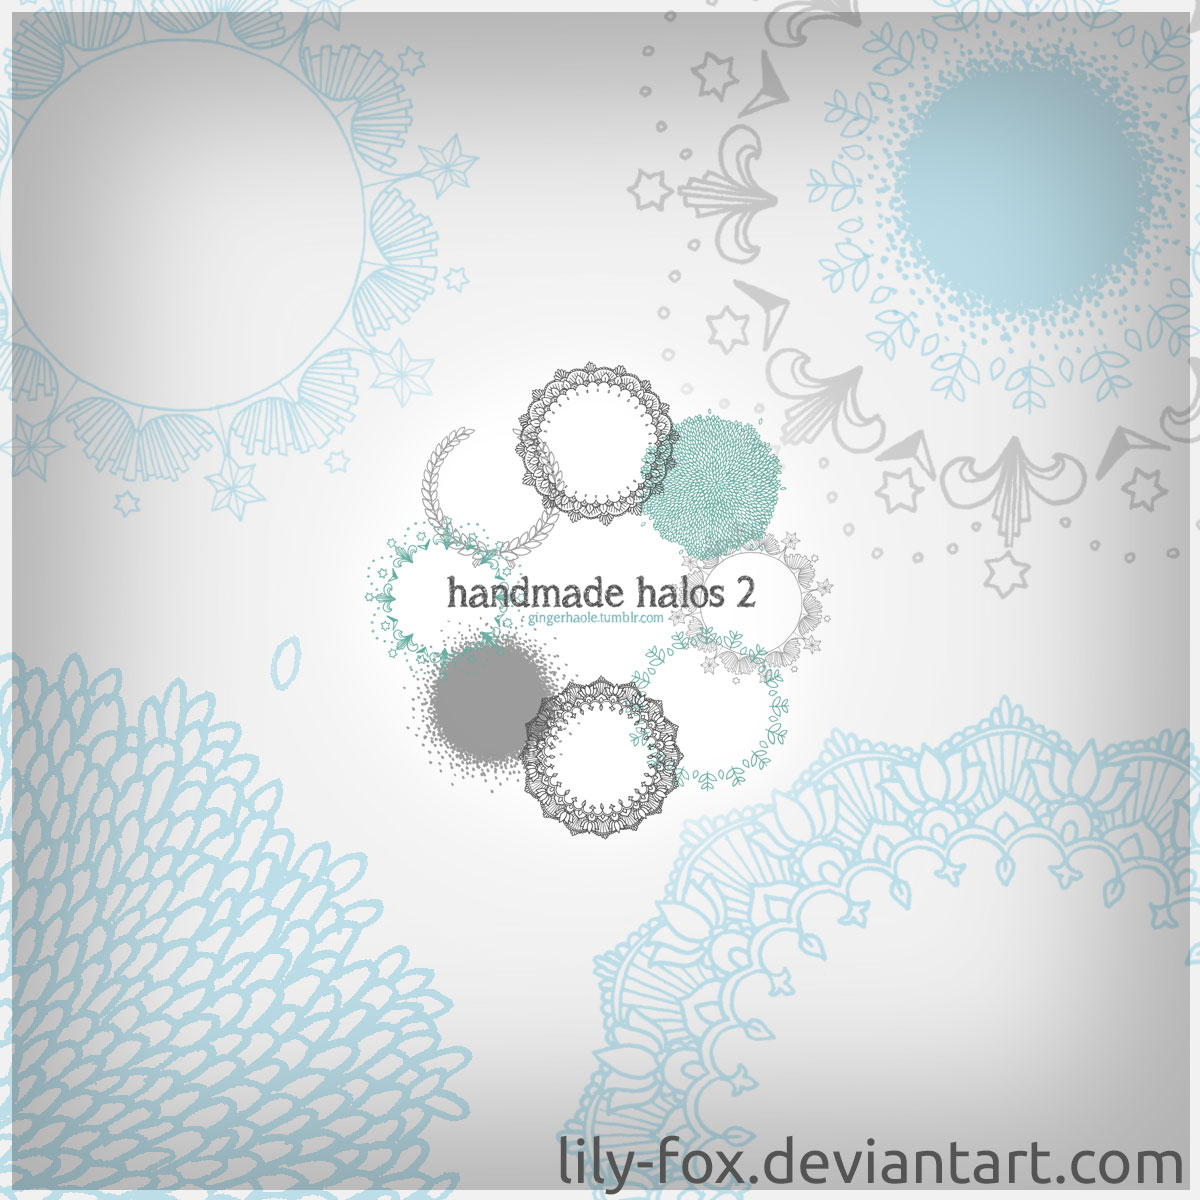 Handmade Halos 2 Brush Set - Photoshop brushes